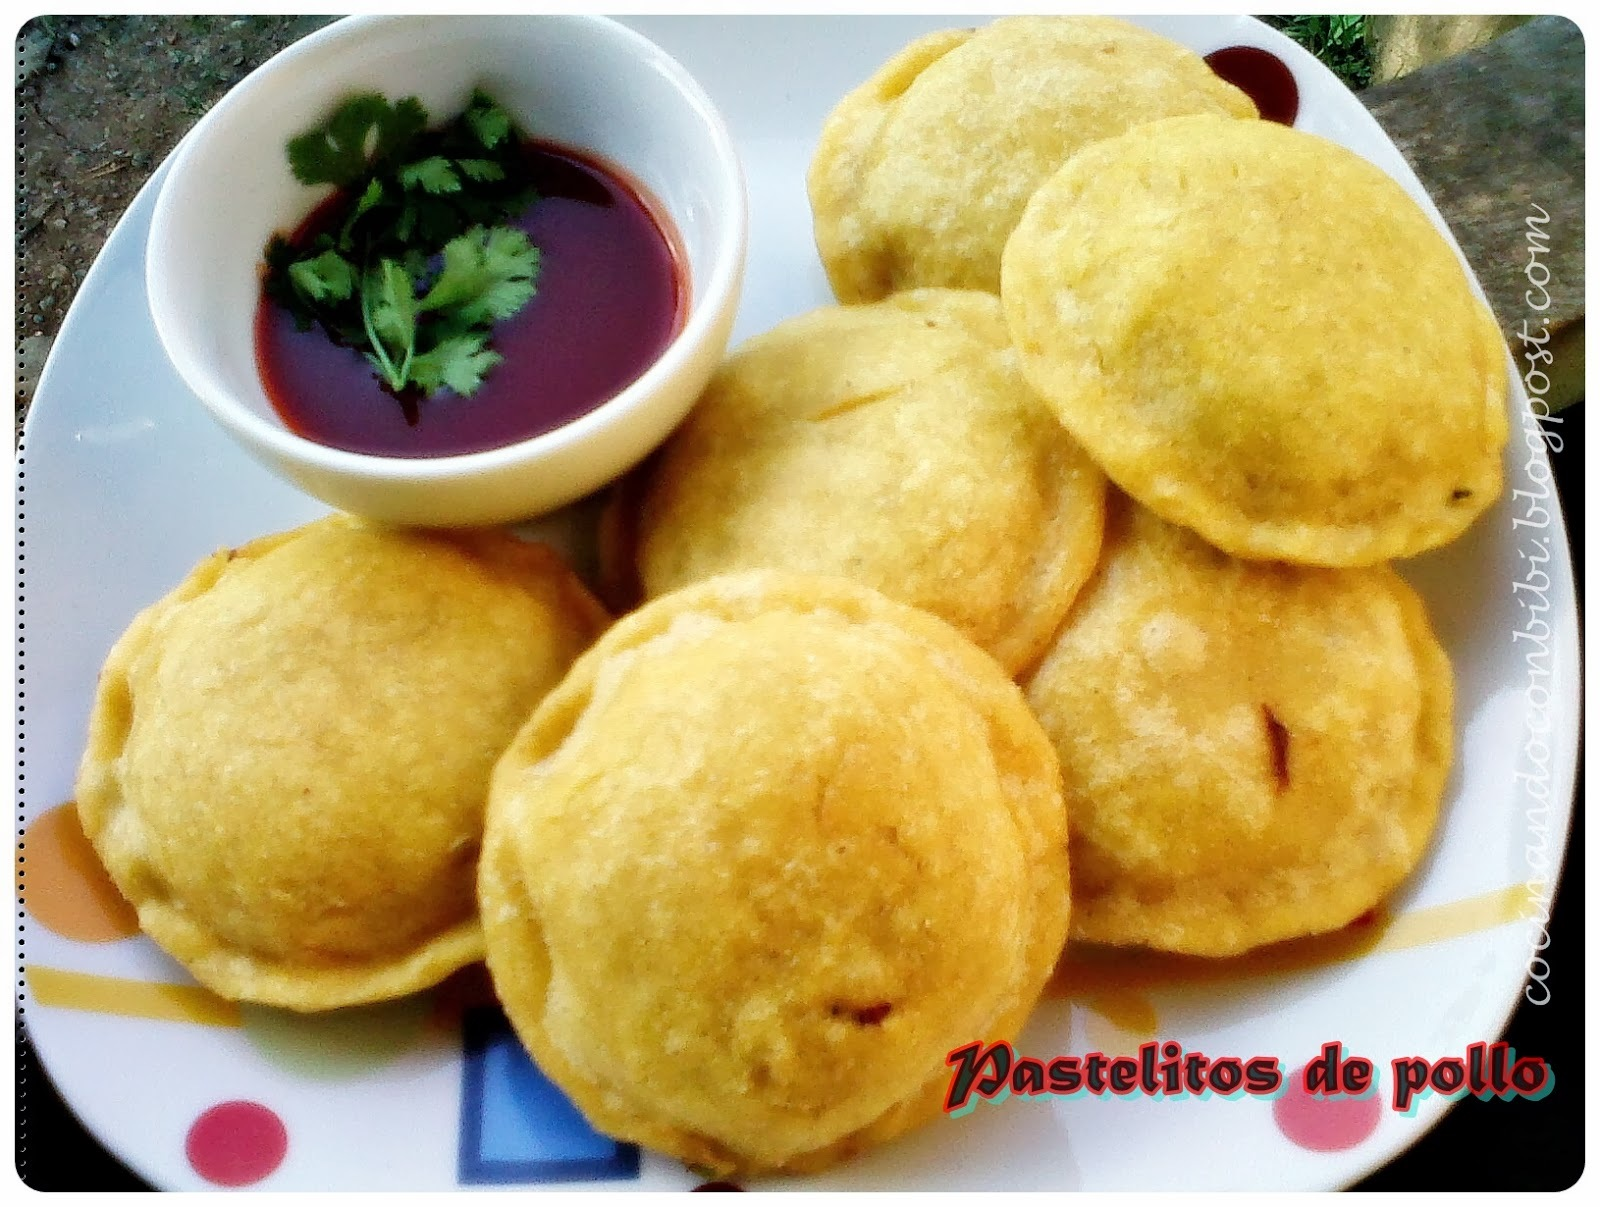 Pastelitos de pollo